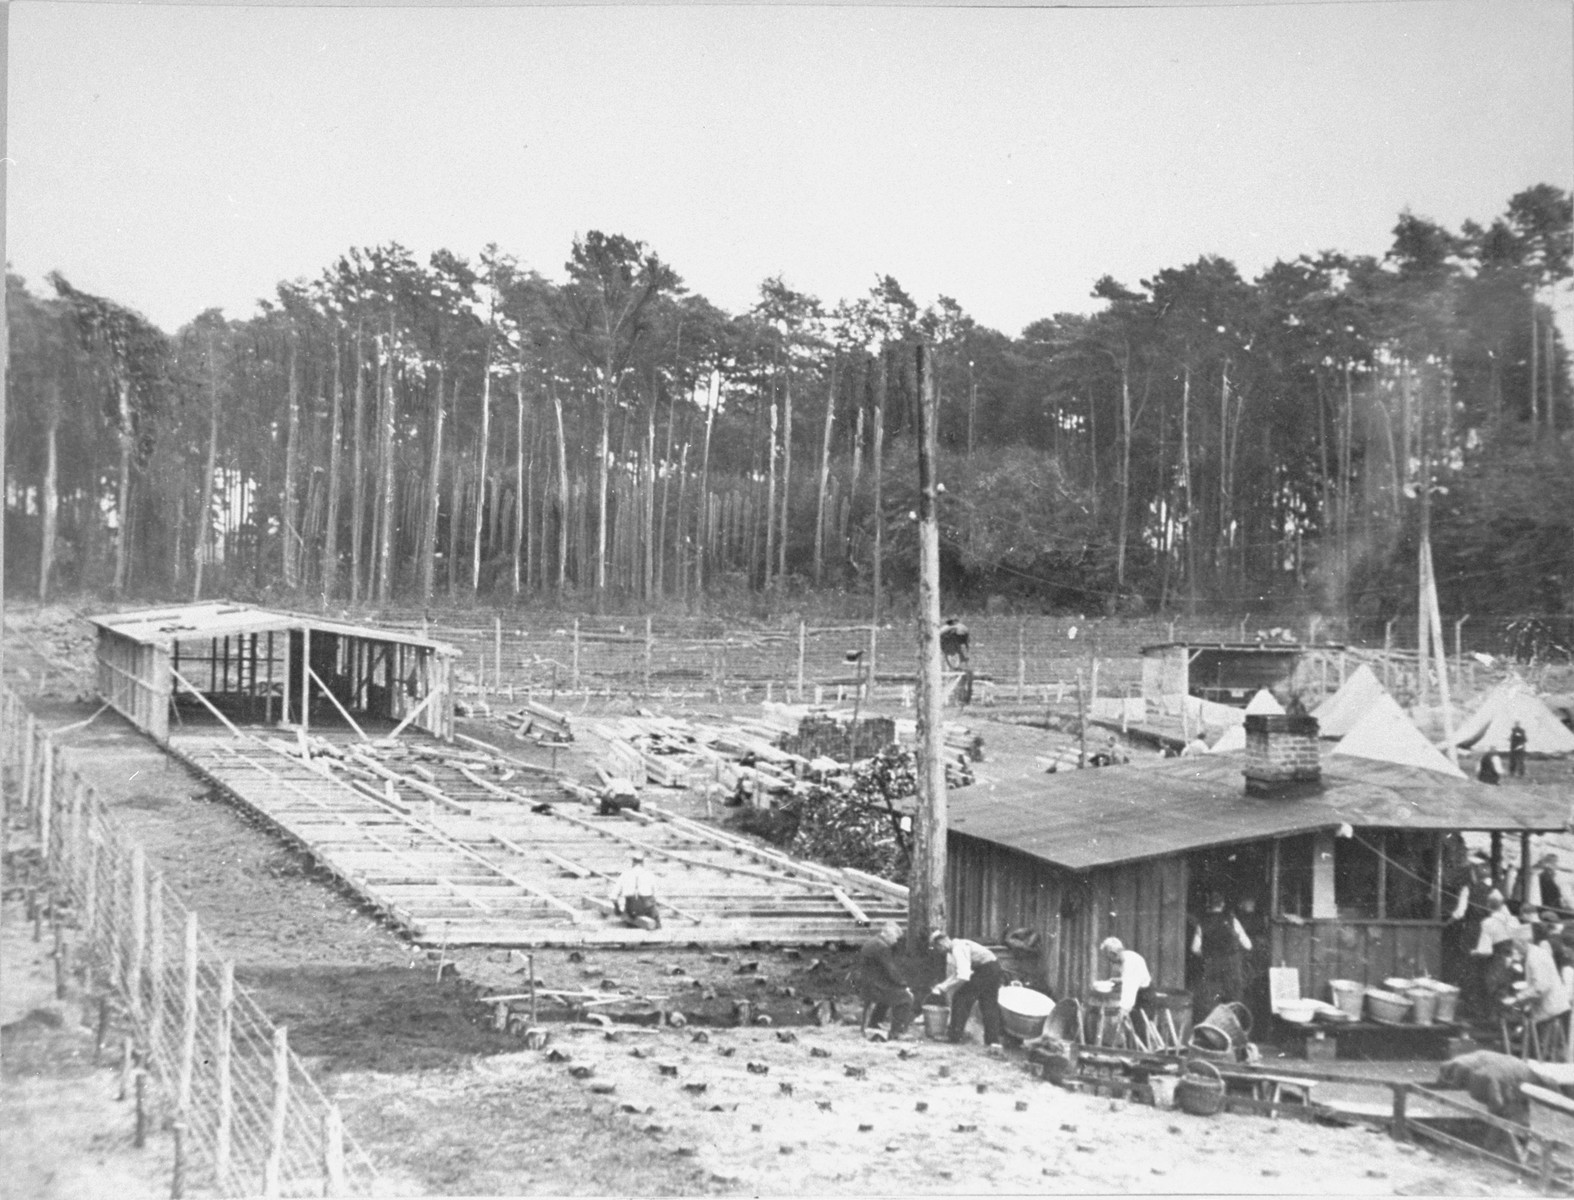 Prisoners engaged in the construction of foundations for future barracks.